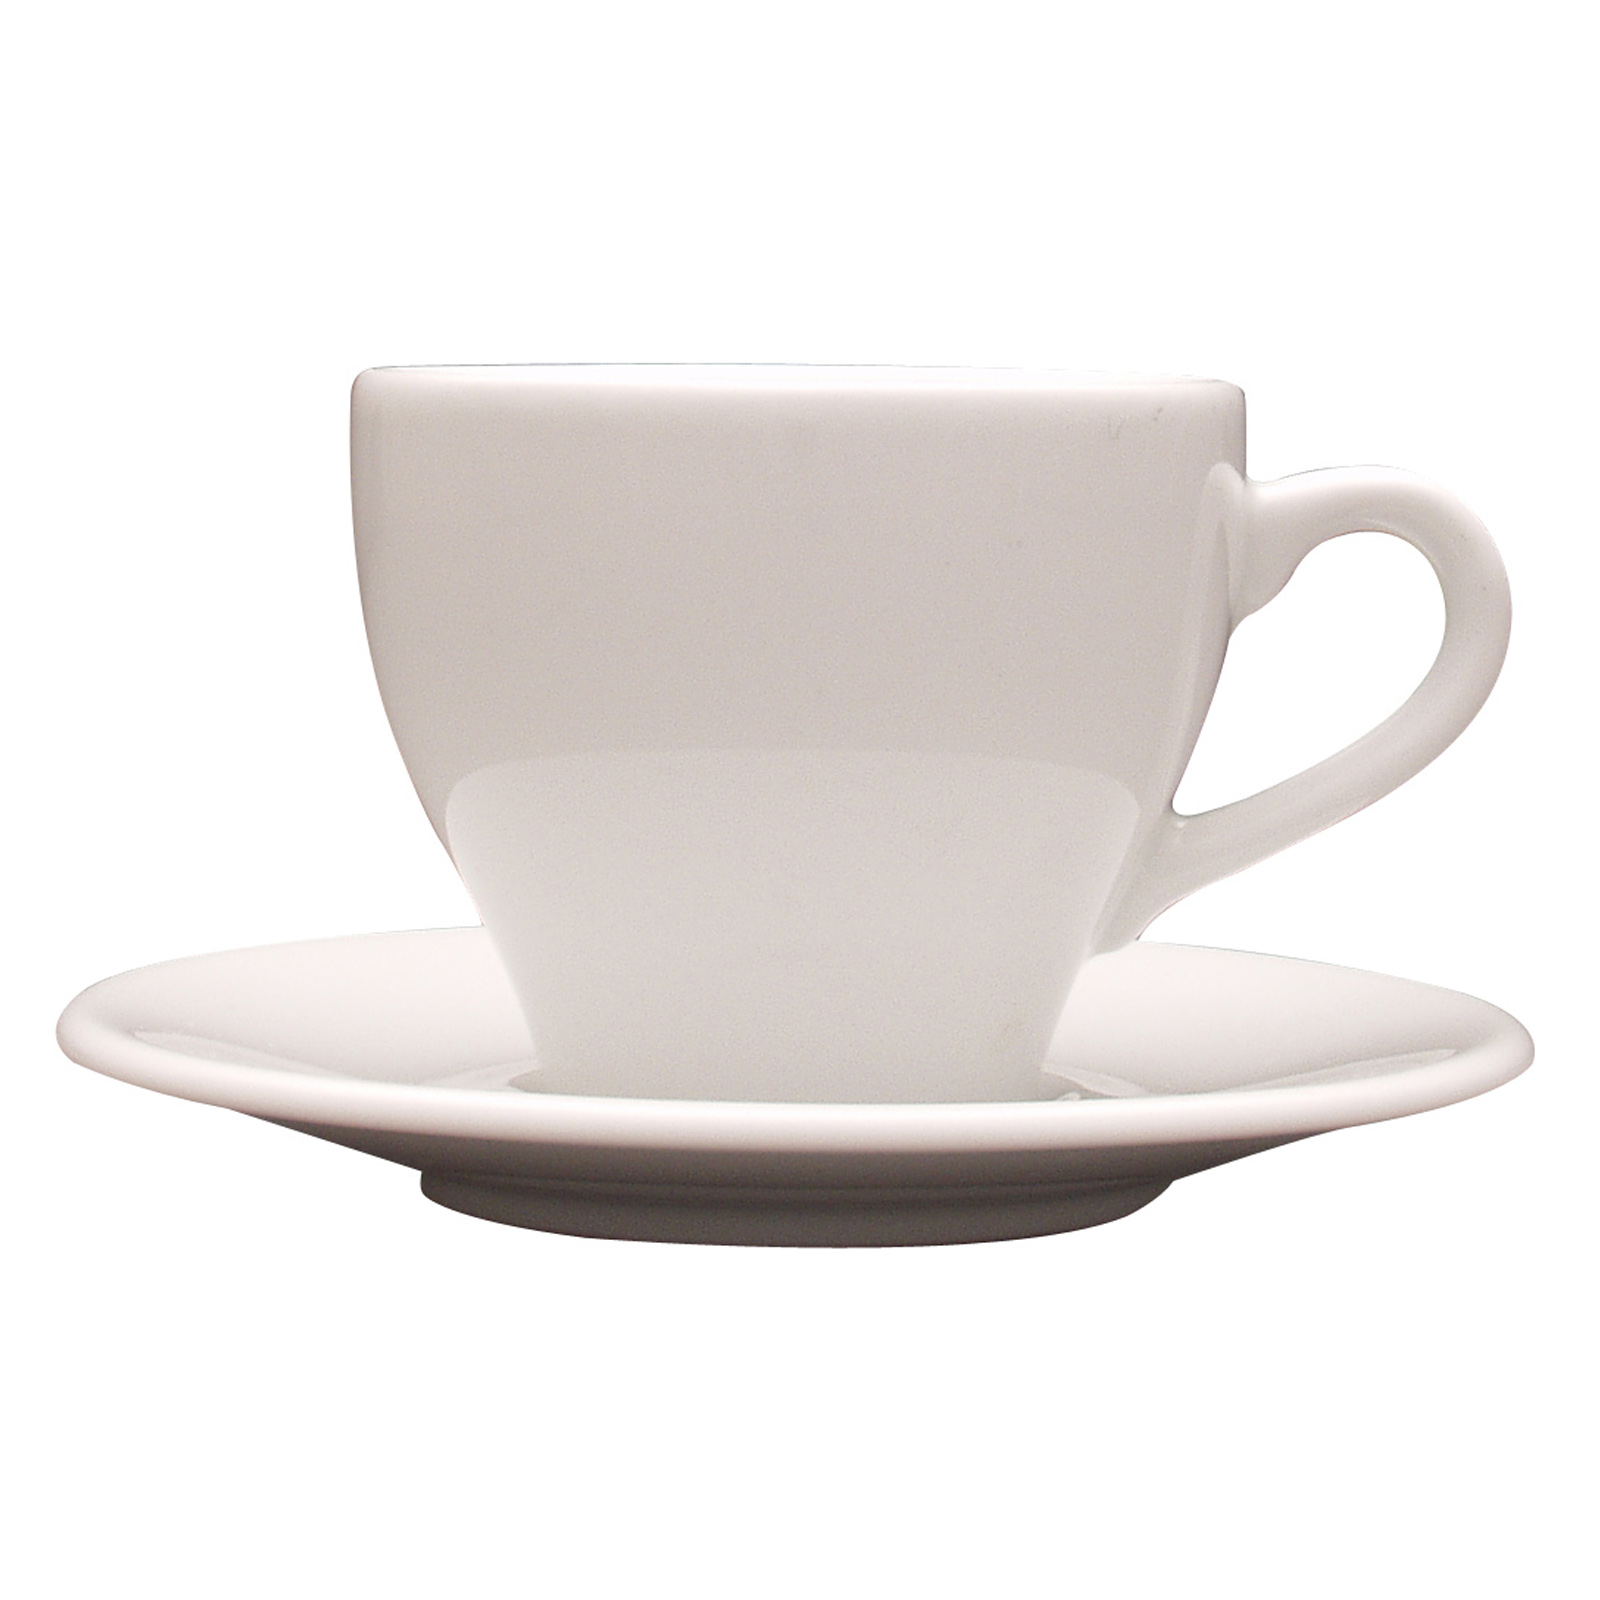 Set of 24 Paula Espresso Saucers by Lubiana